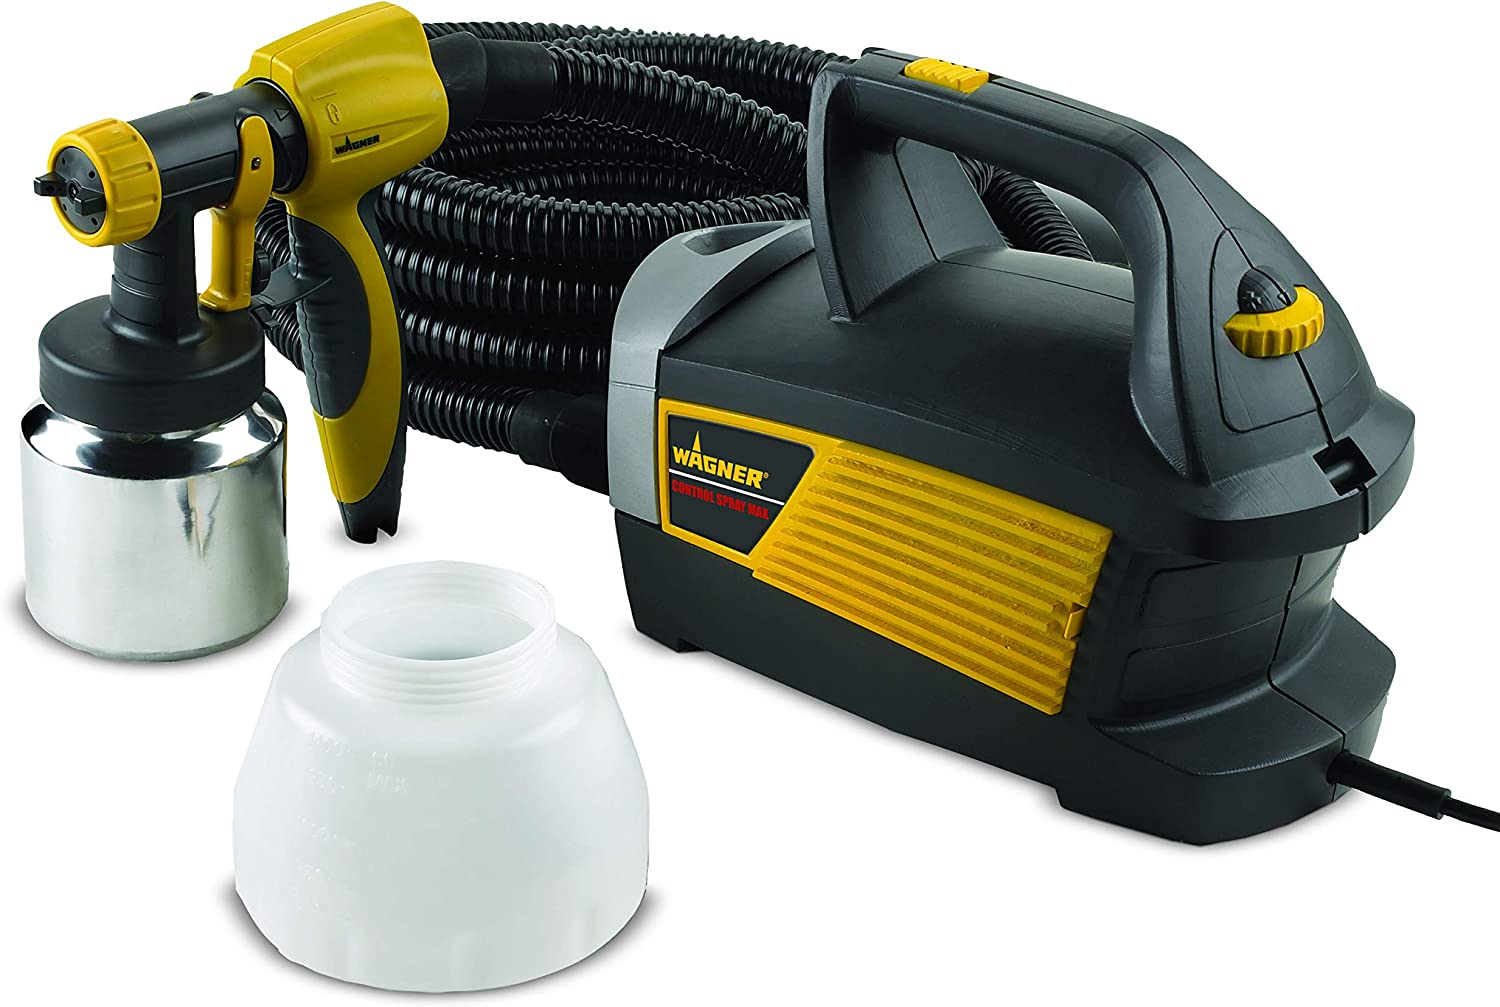 Wagner 518080 Control Spray Max Sprayer Review